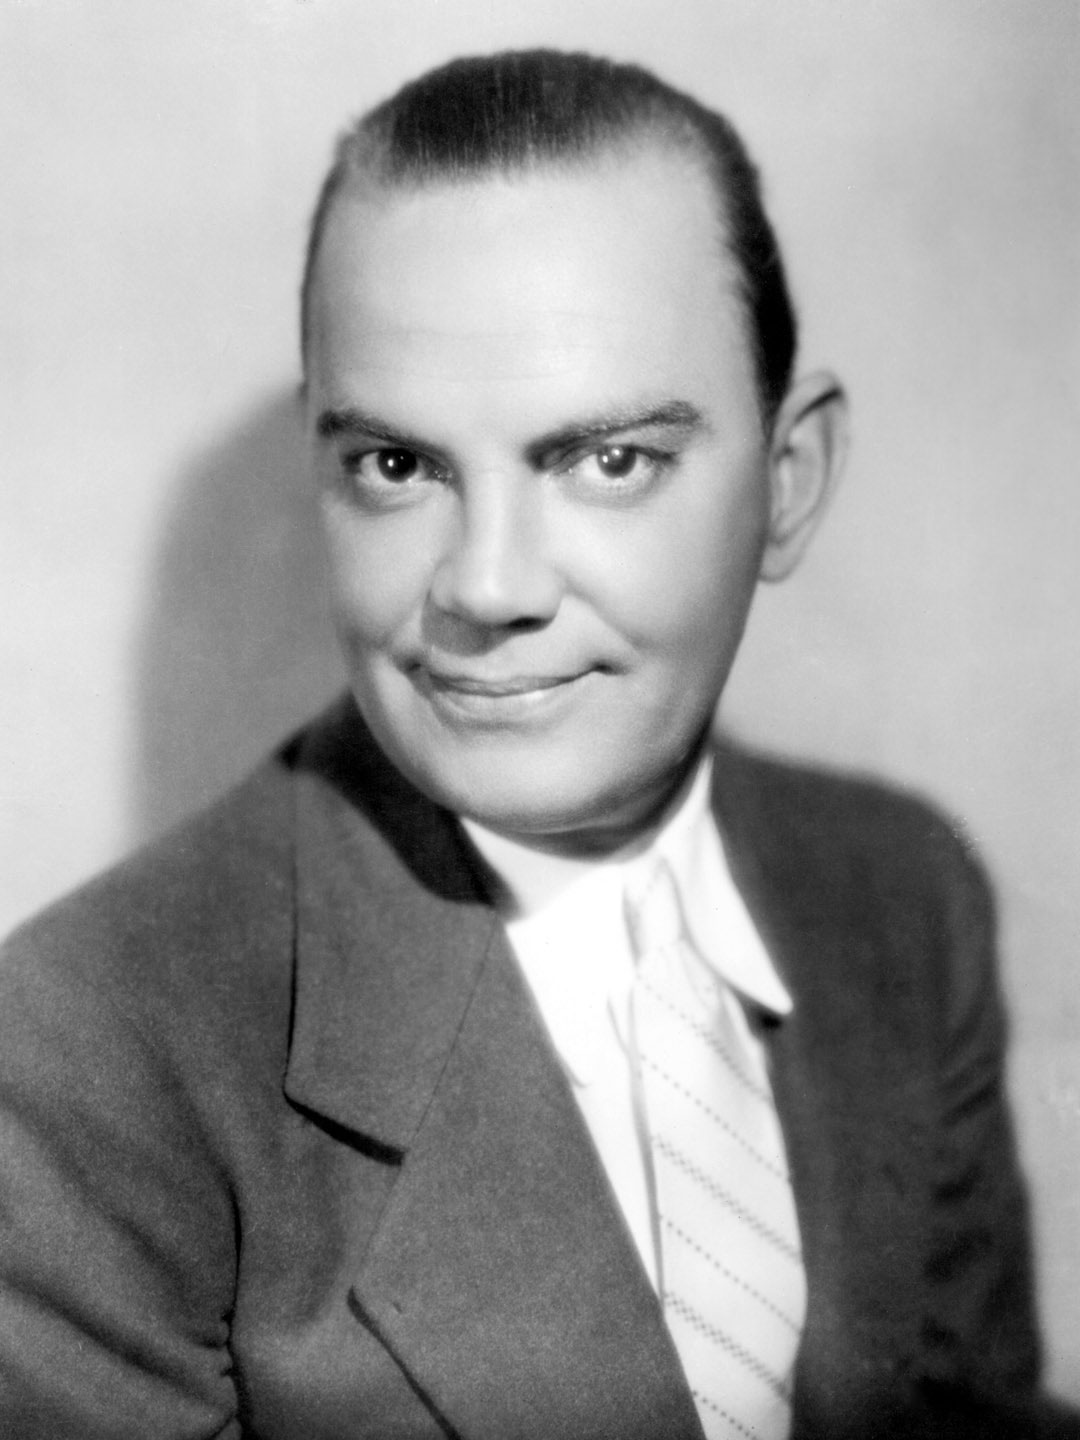 File:Cliff edwards.jpg